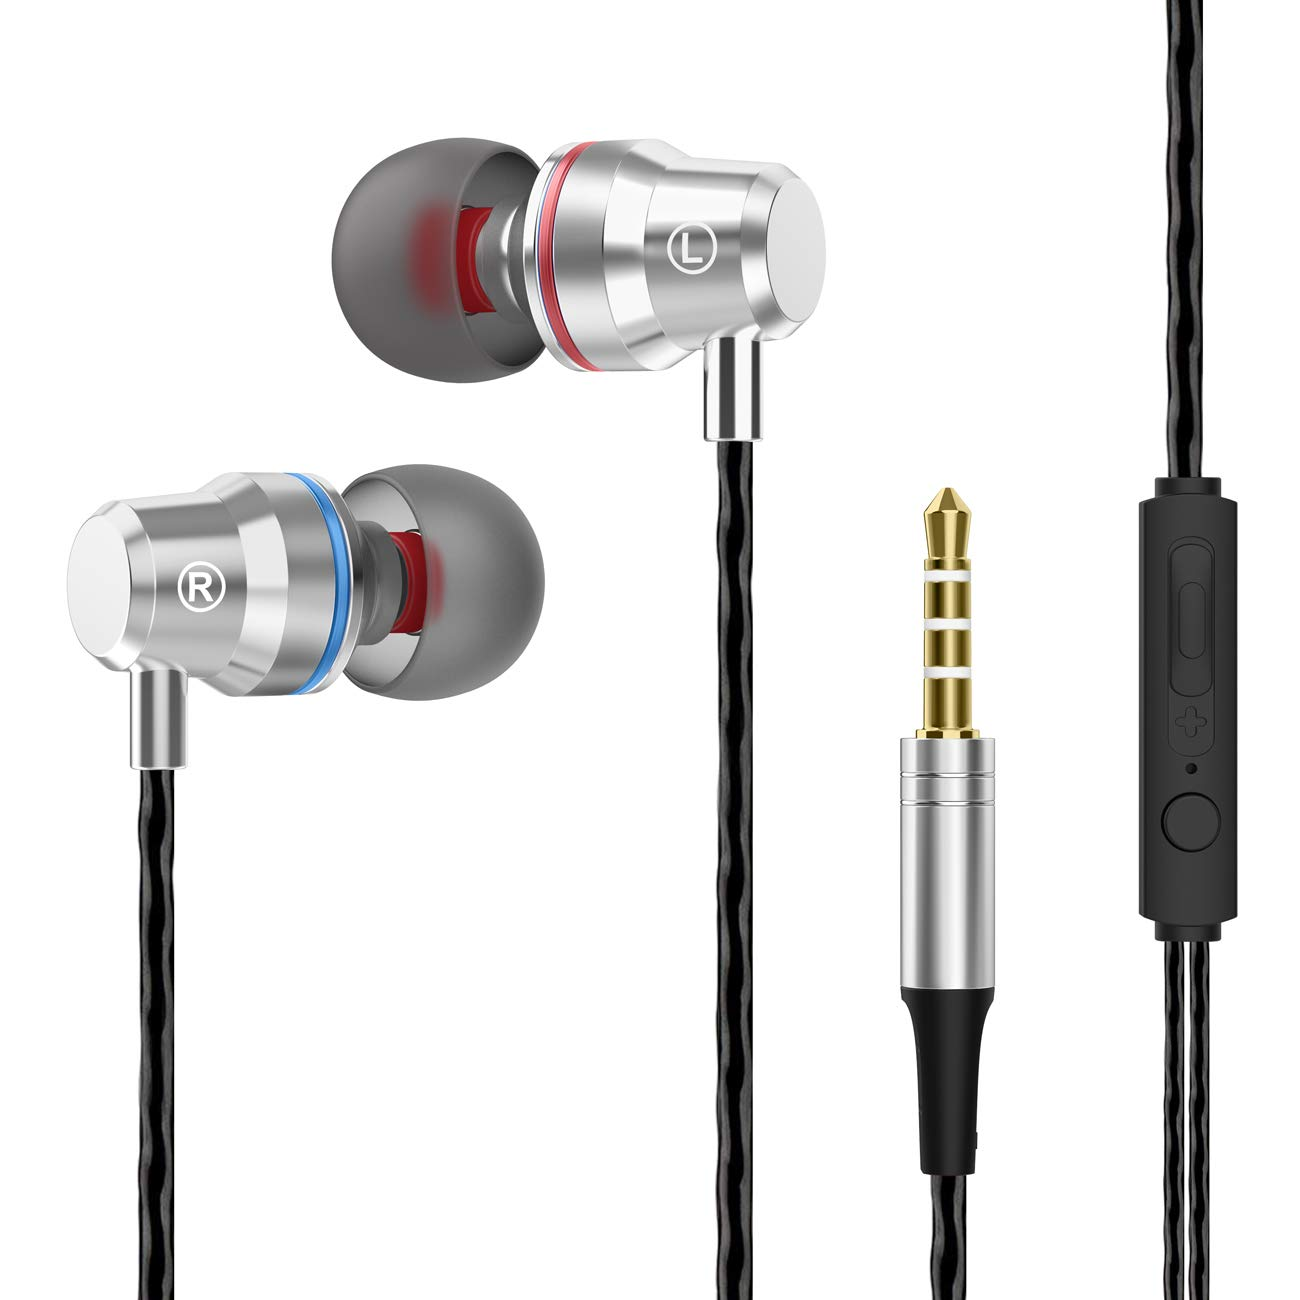 in-Ear Wired Earphones, Noise Cancelling Headphones with Microphone and Volume Control,3.5mm Ear Bud